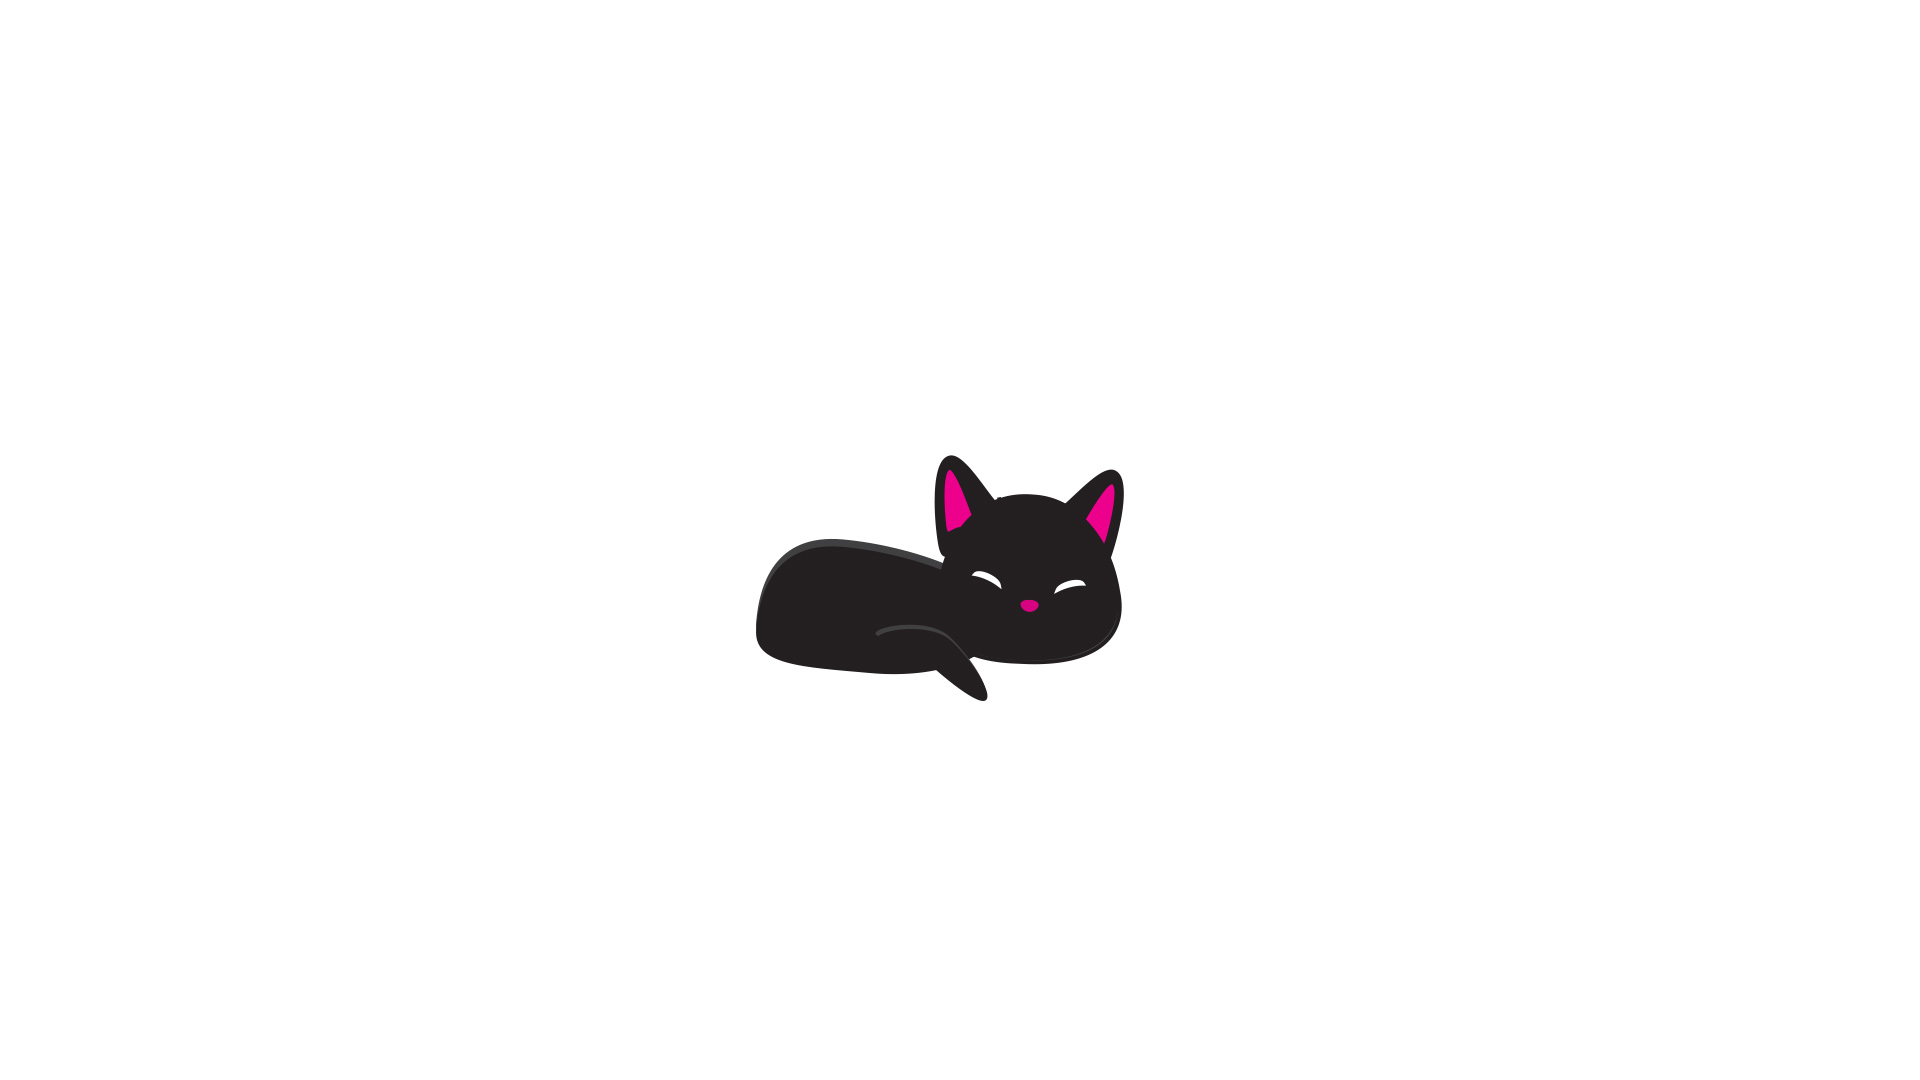 Black-Cat-Minimalist-OC-1920-x-1080-wallpaper-wp3603392